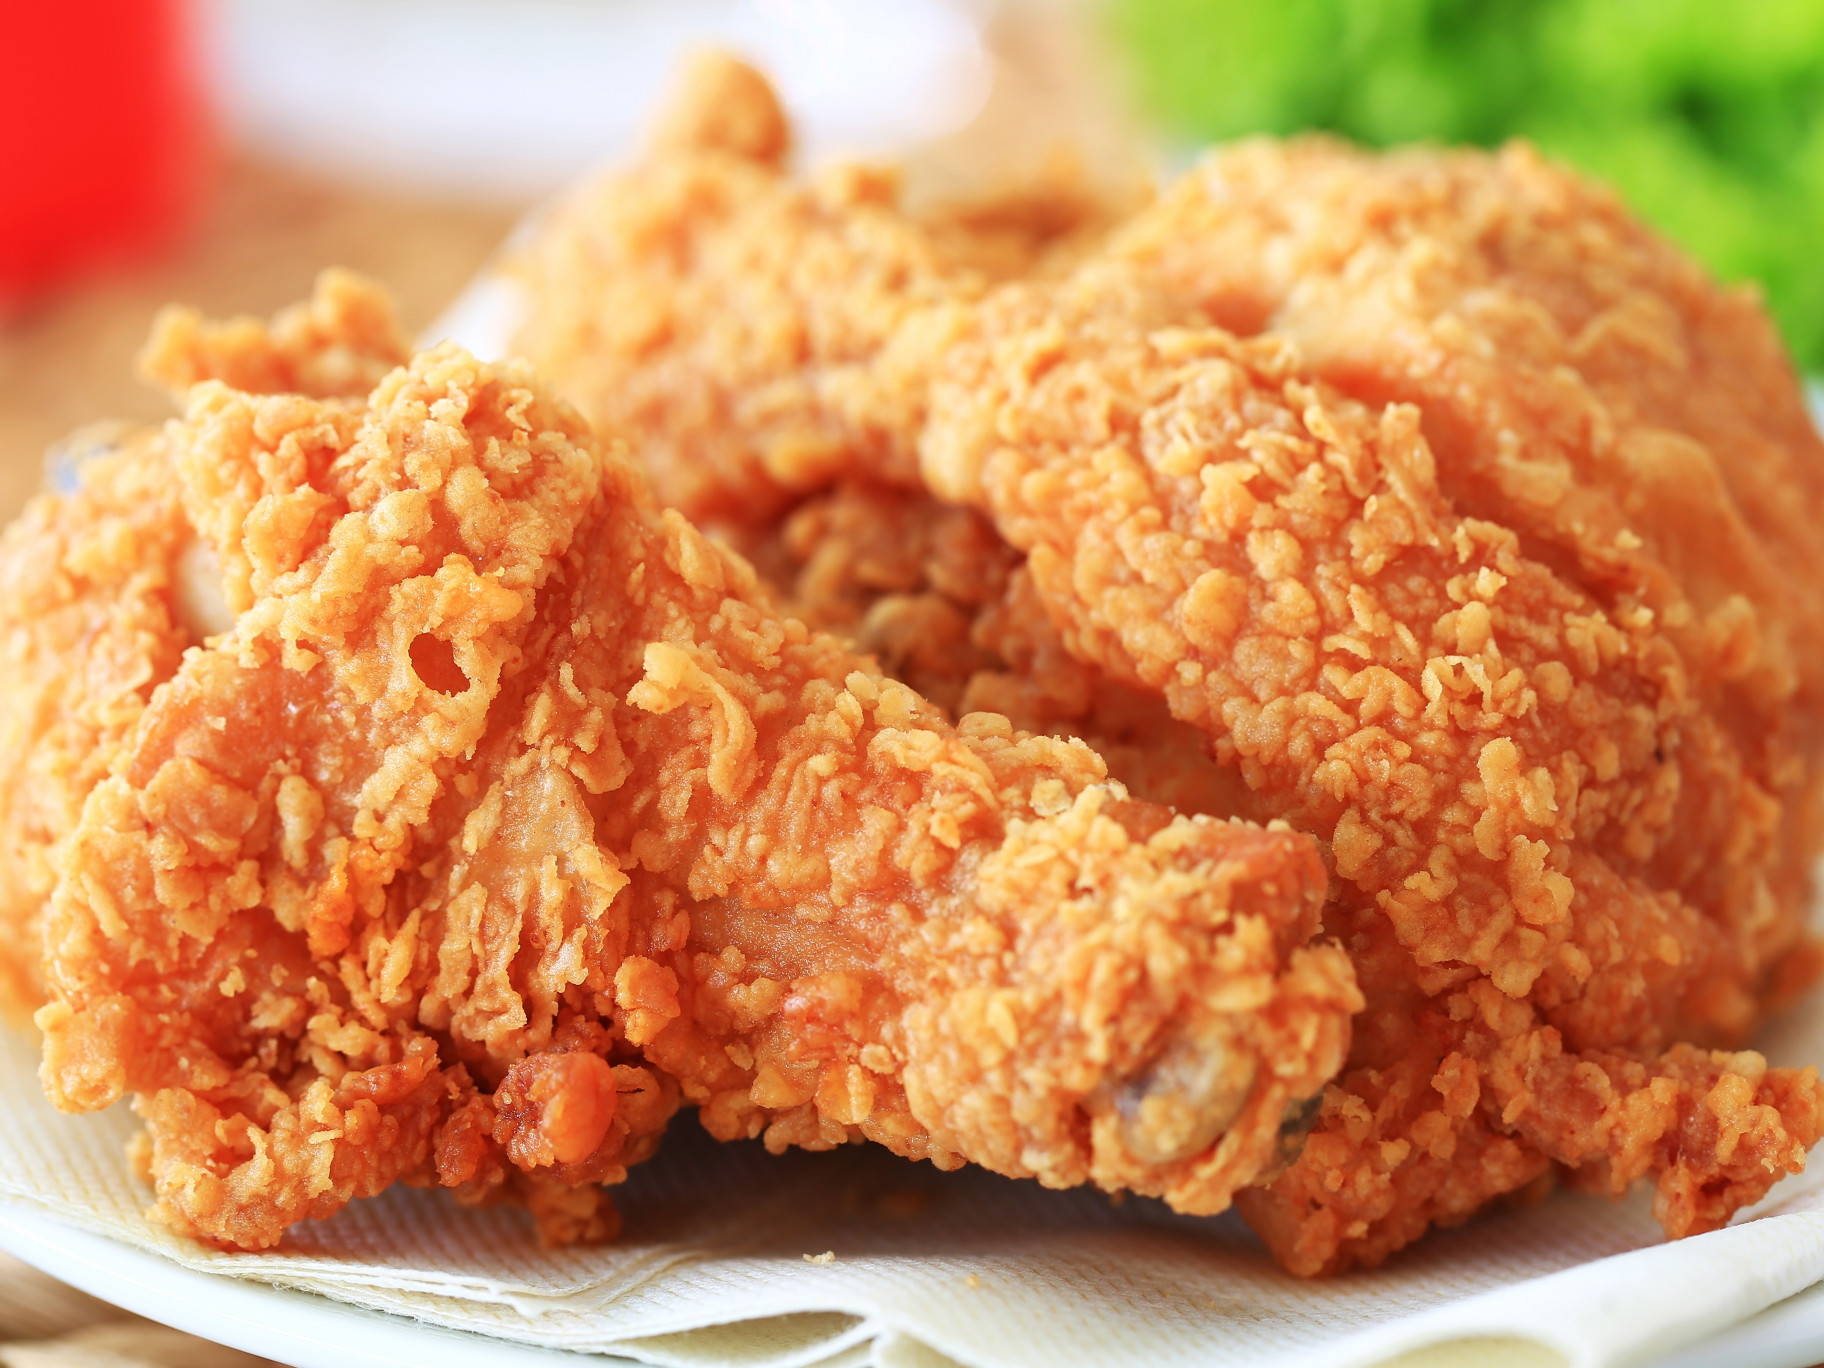 Fried Chicken Recipe  Fried Chicken Recipe — Dishmaps